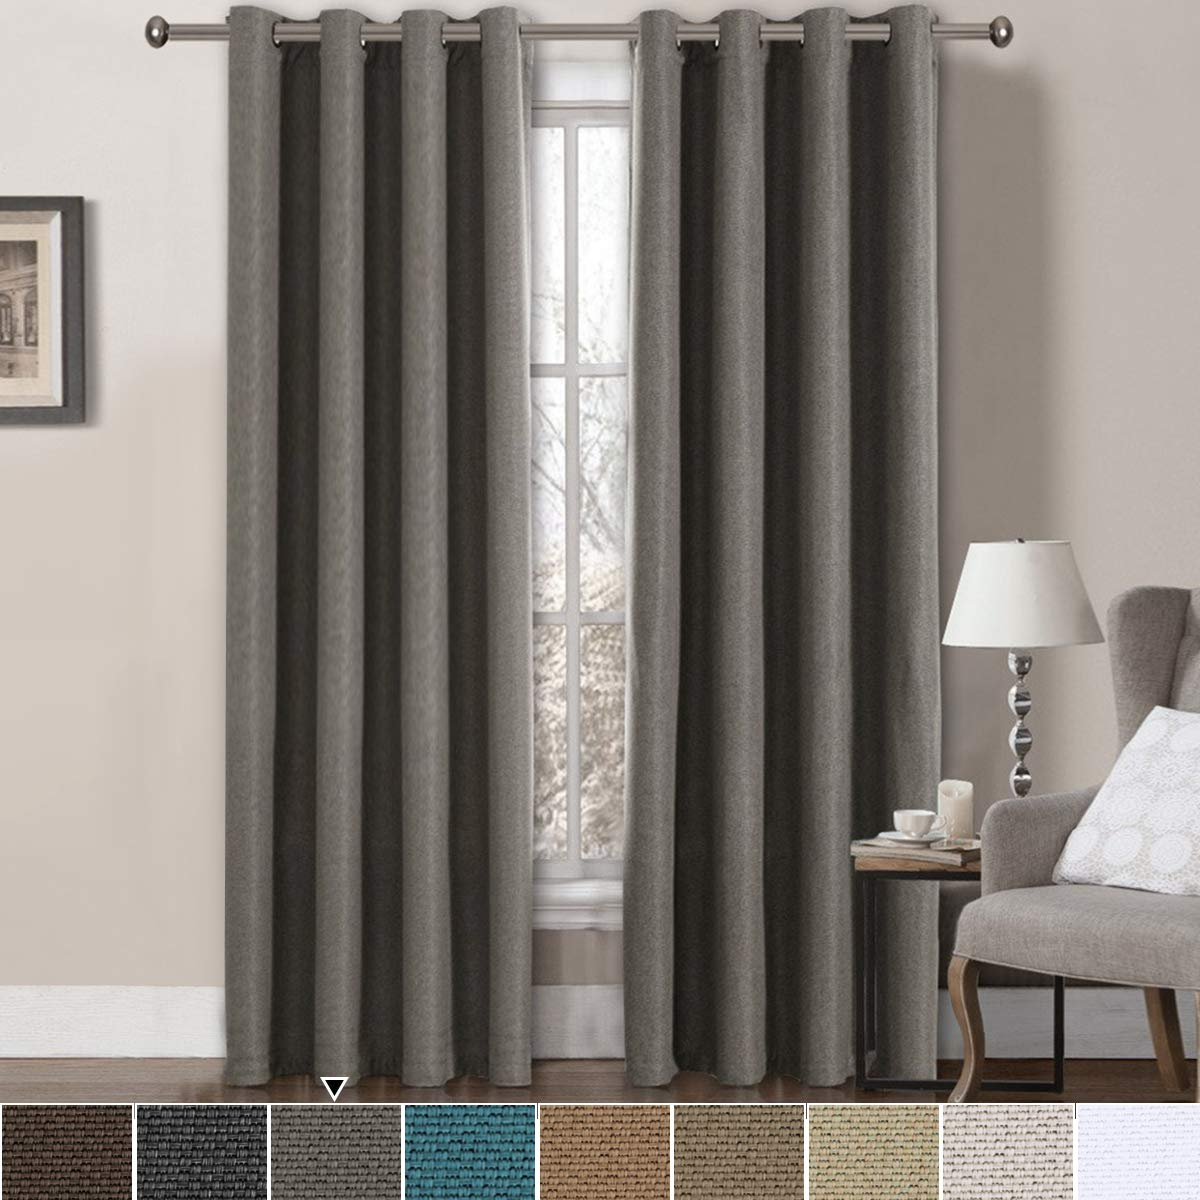 Trendy Faux Linen Blackout Curtains Pertaining To Linen Blackout Curtains 84 Inches Long For Bedroom Heavy Faux Linen Curtain Room Darkening Curtains For Living Room Window Treatments Drapes Burlap (View 20 of 20)